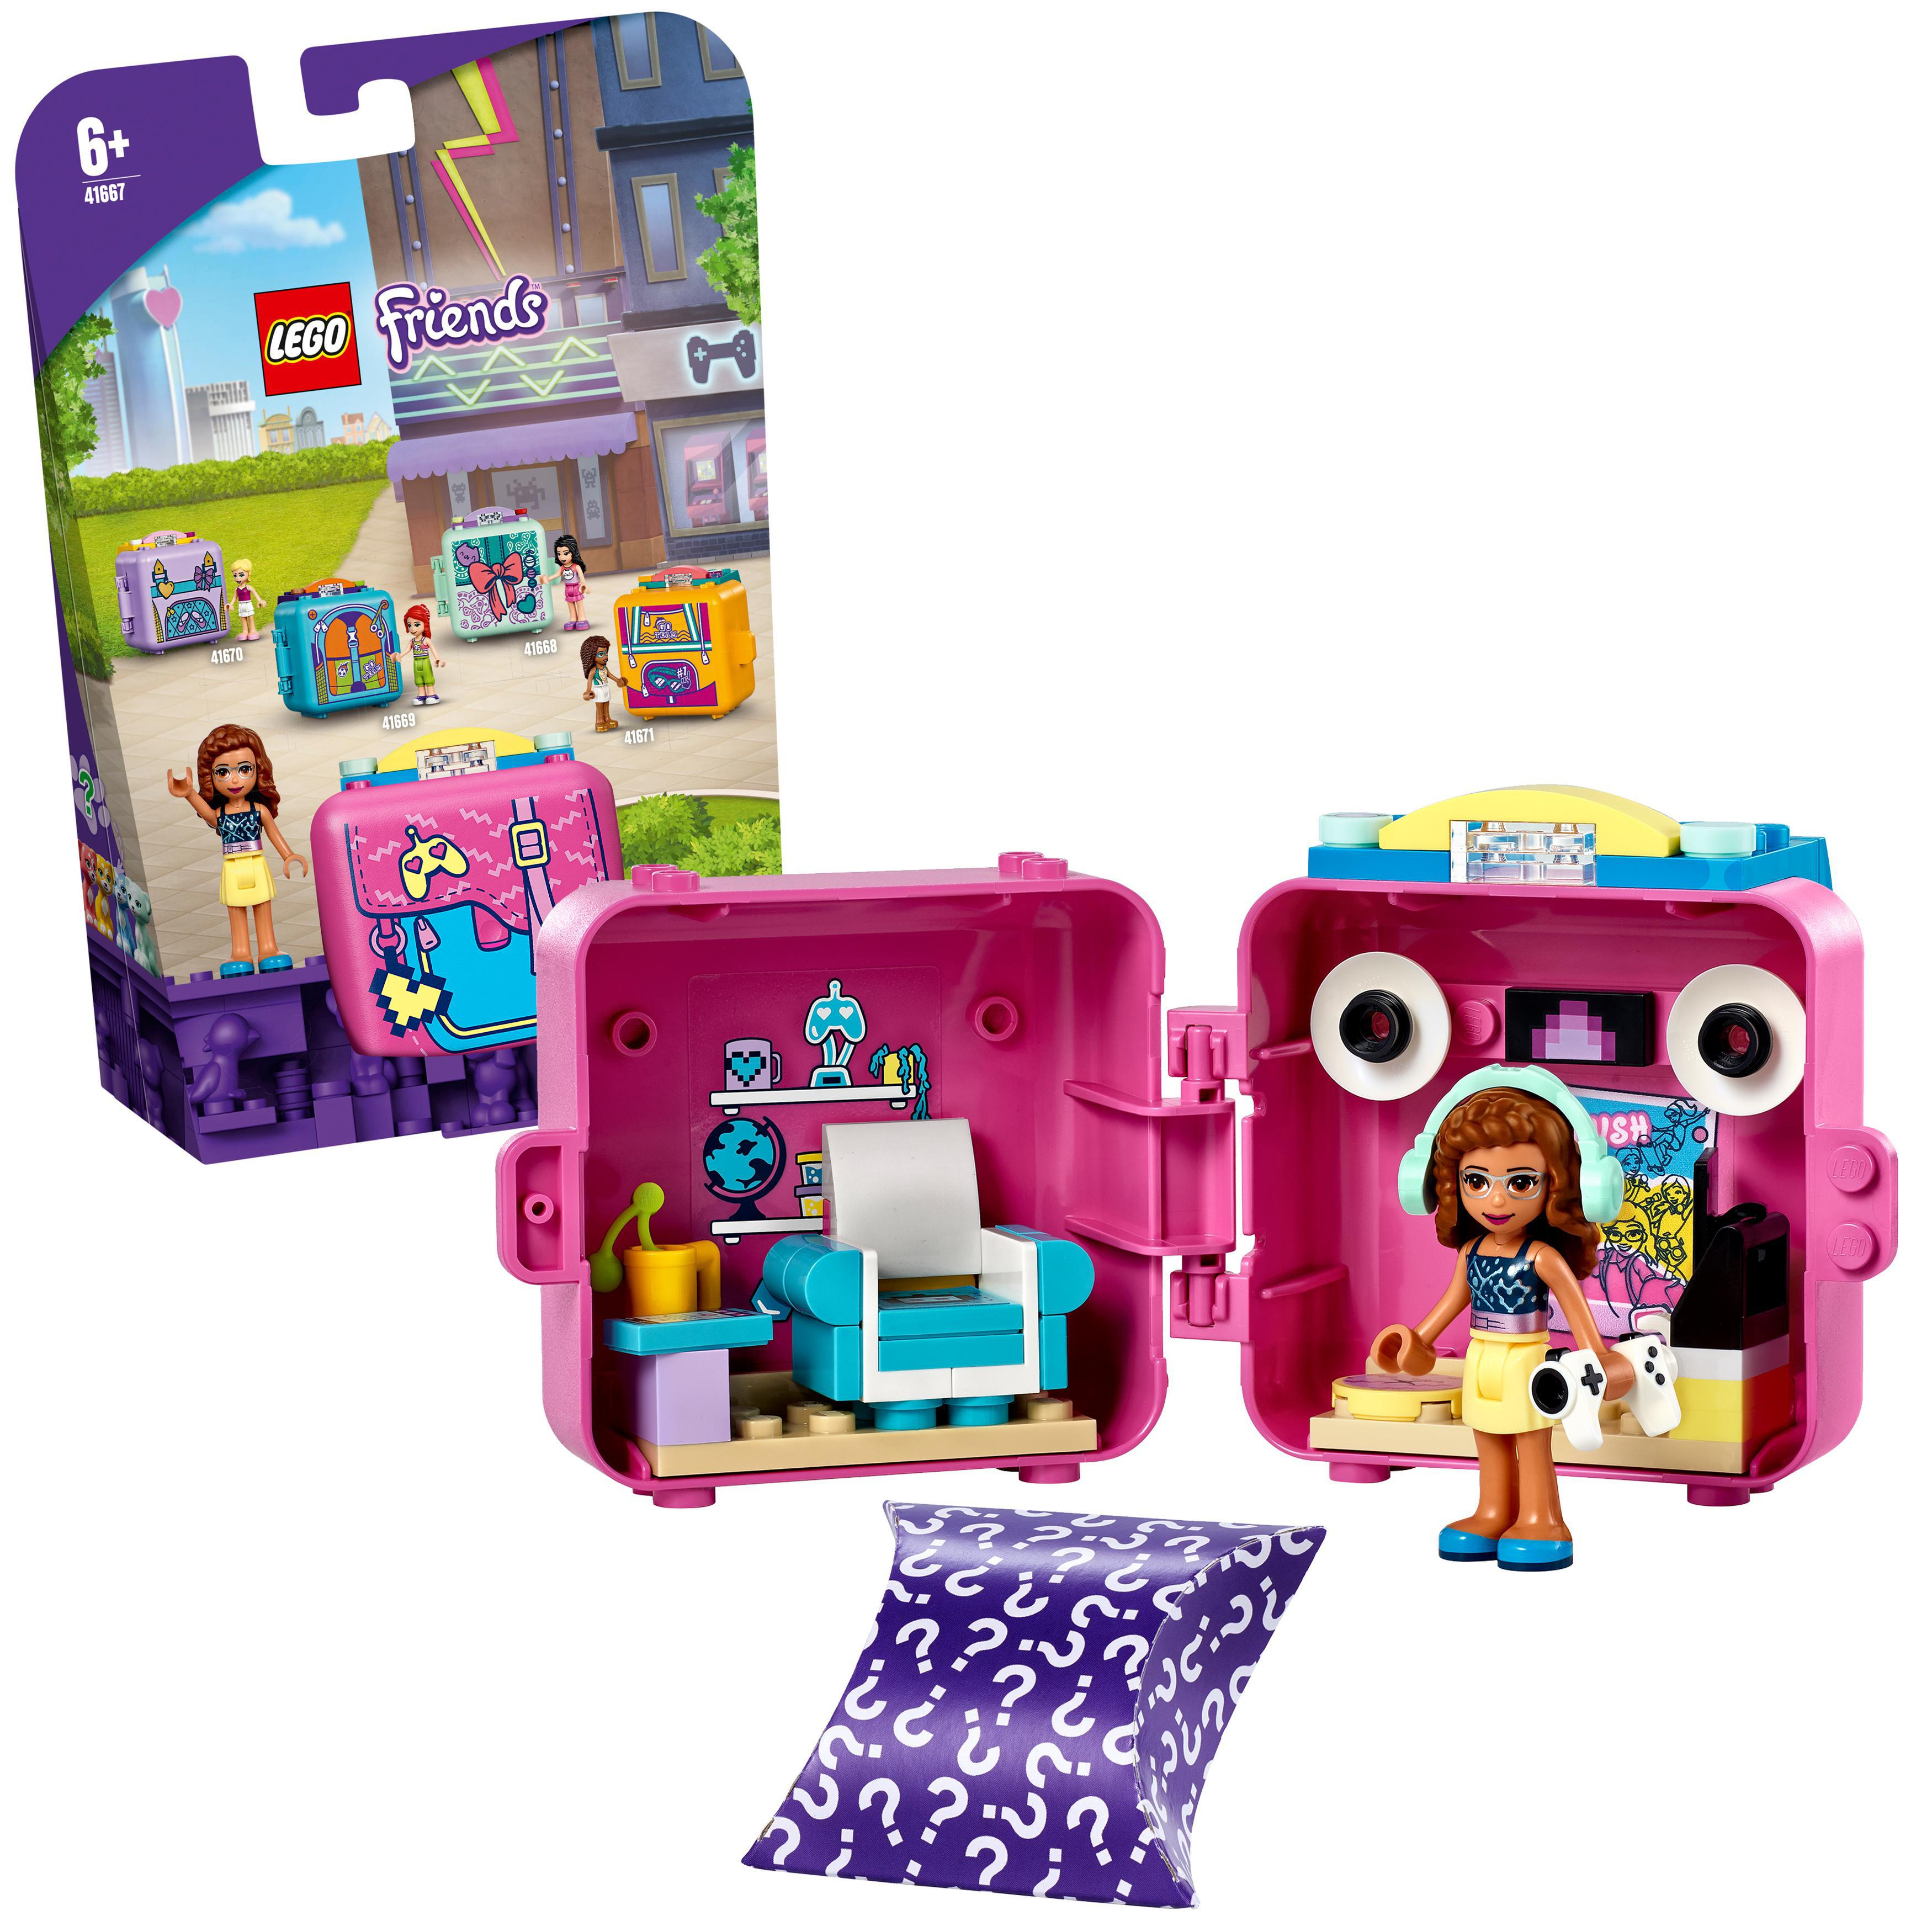 LEGO Friends - Olivia's Gaming Cube (41667)